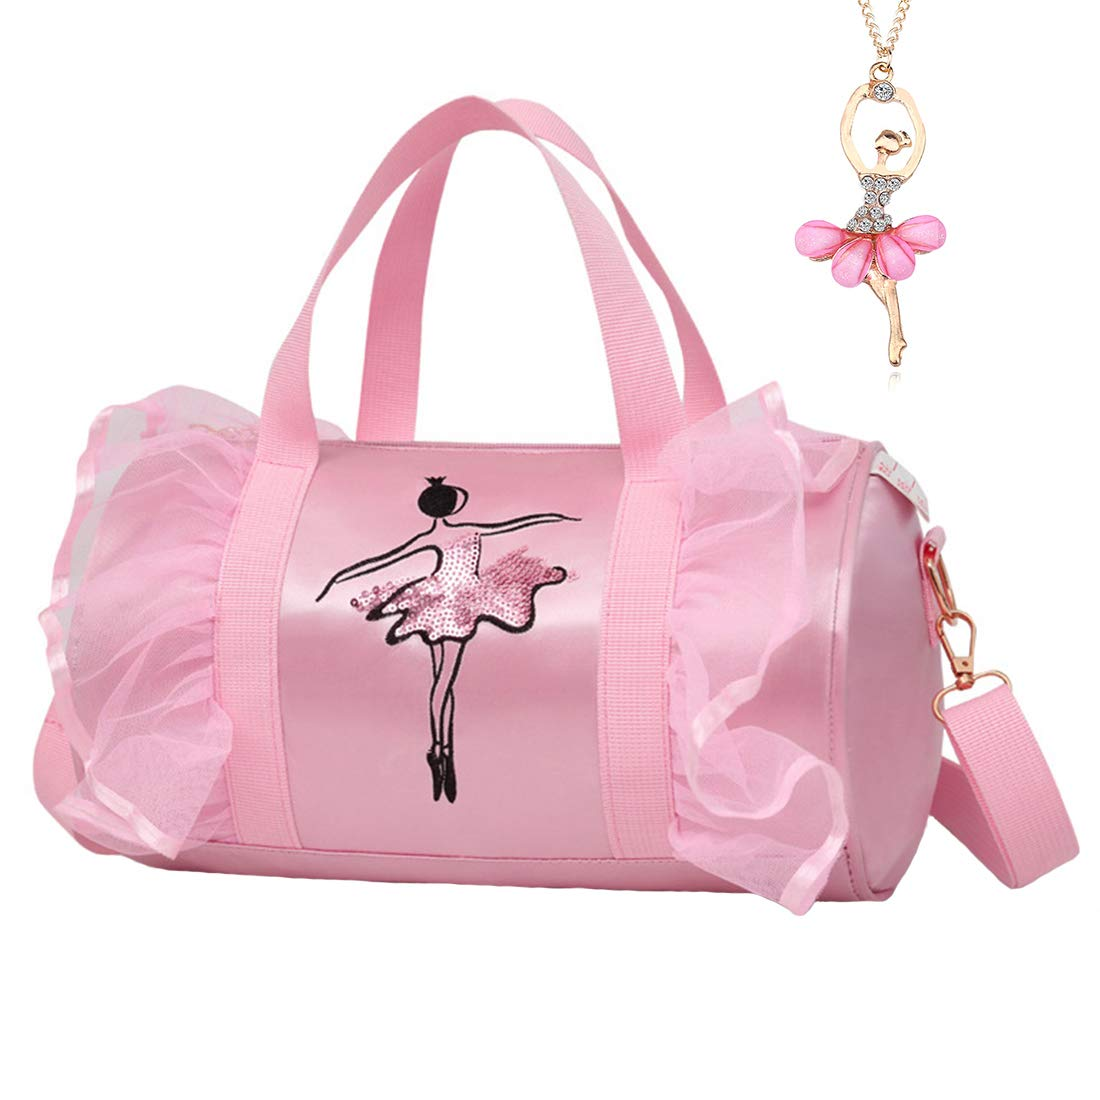 Cute Ballet Dance Bag Tutu Dress Bag with Necklace Girls (Pink2 of Long Mesh) by Debbieicy